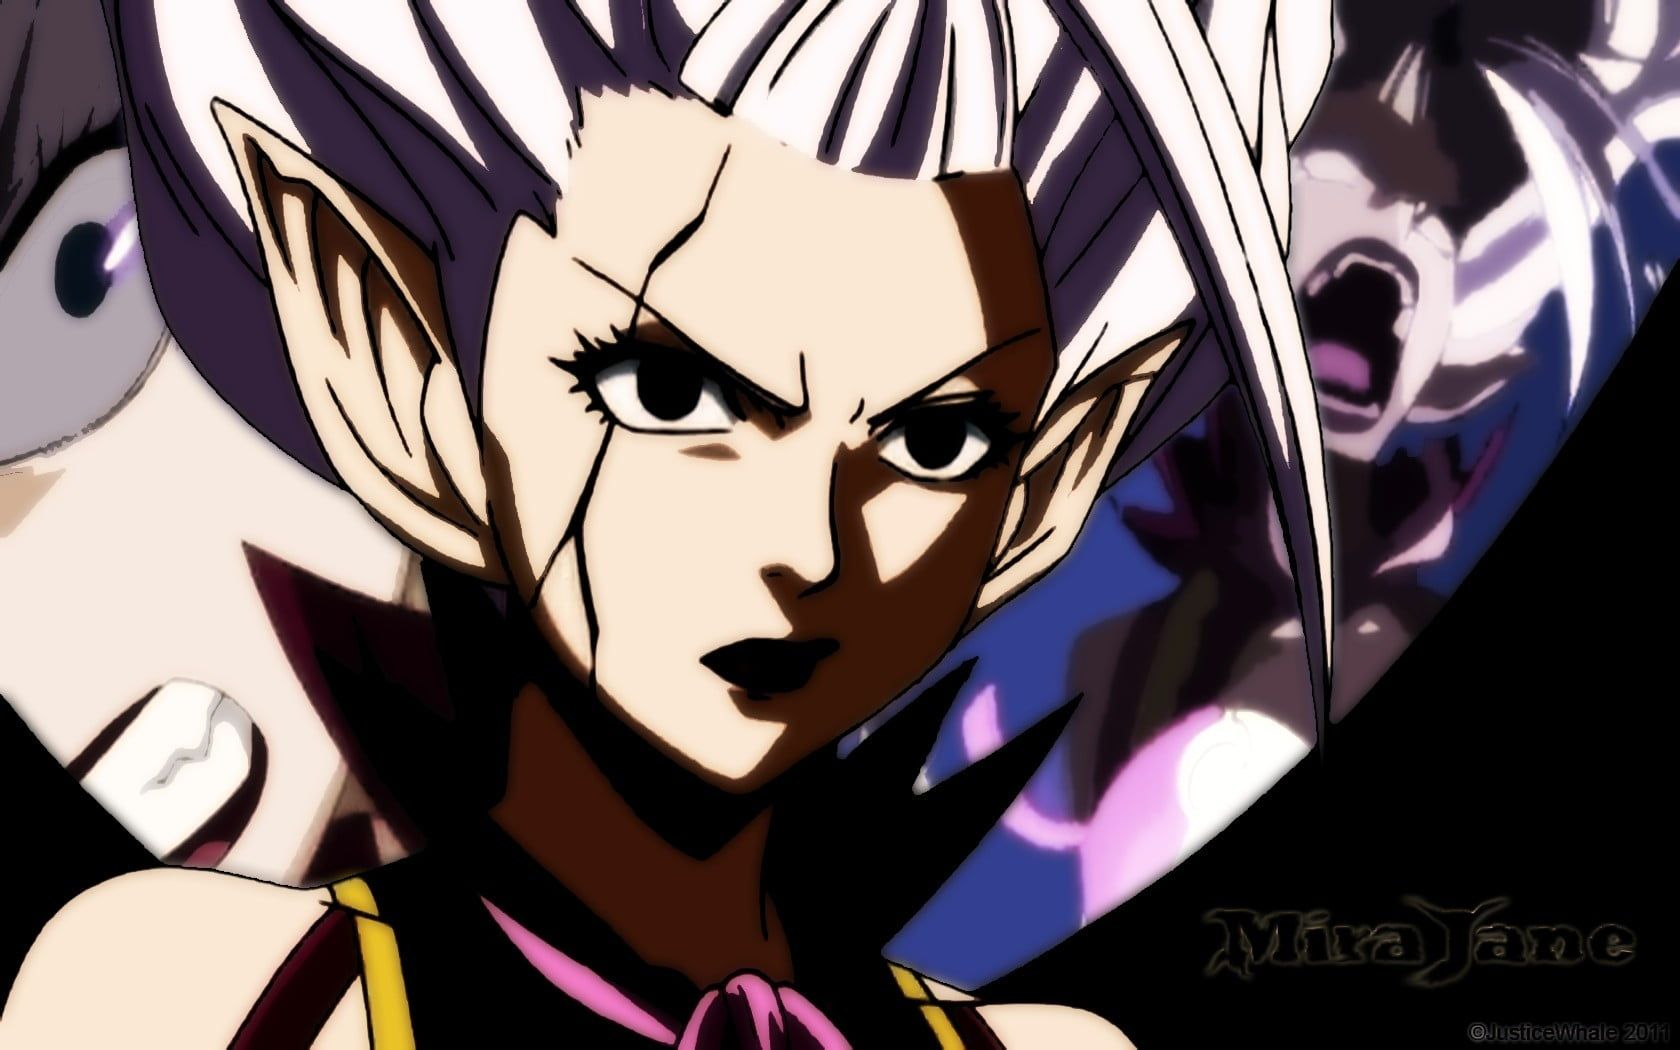 Mirajane Strauss Wallpapers Top Free Mirajane Strauss Backgrounds Wallpaperaccess Mirajane strauss is a character from fairy tail. mirajane strauss wallpapers top free